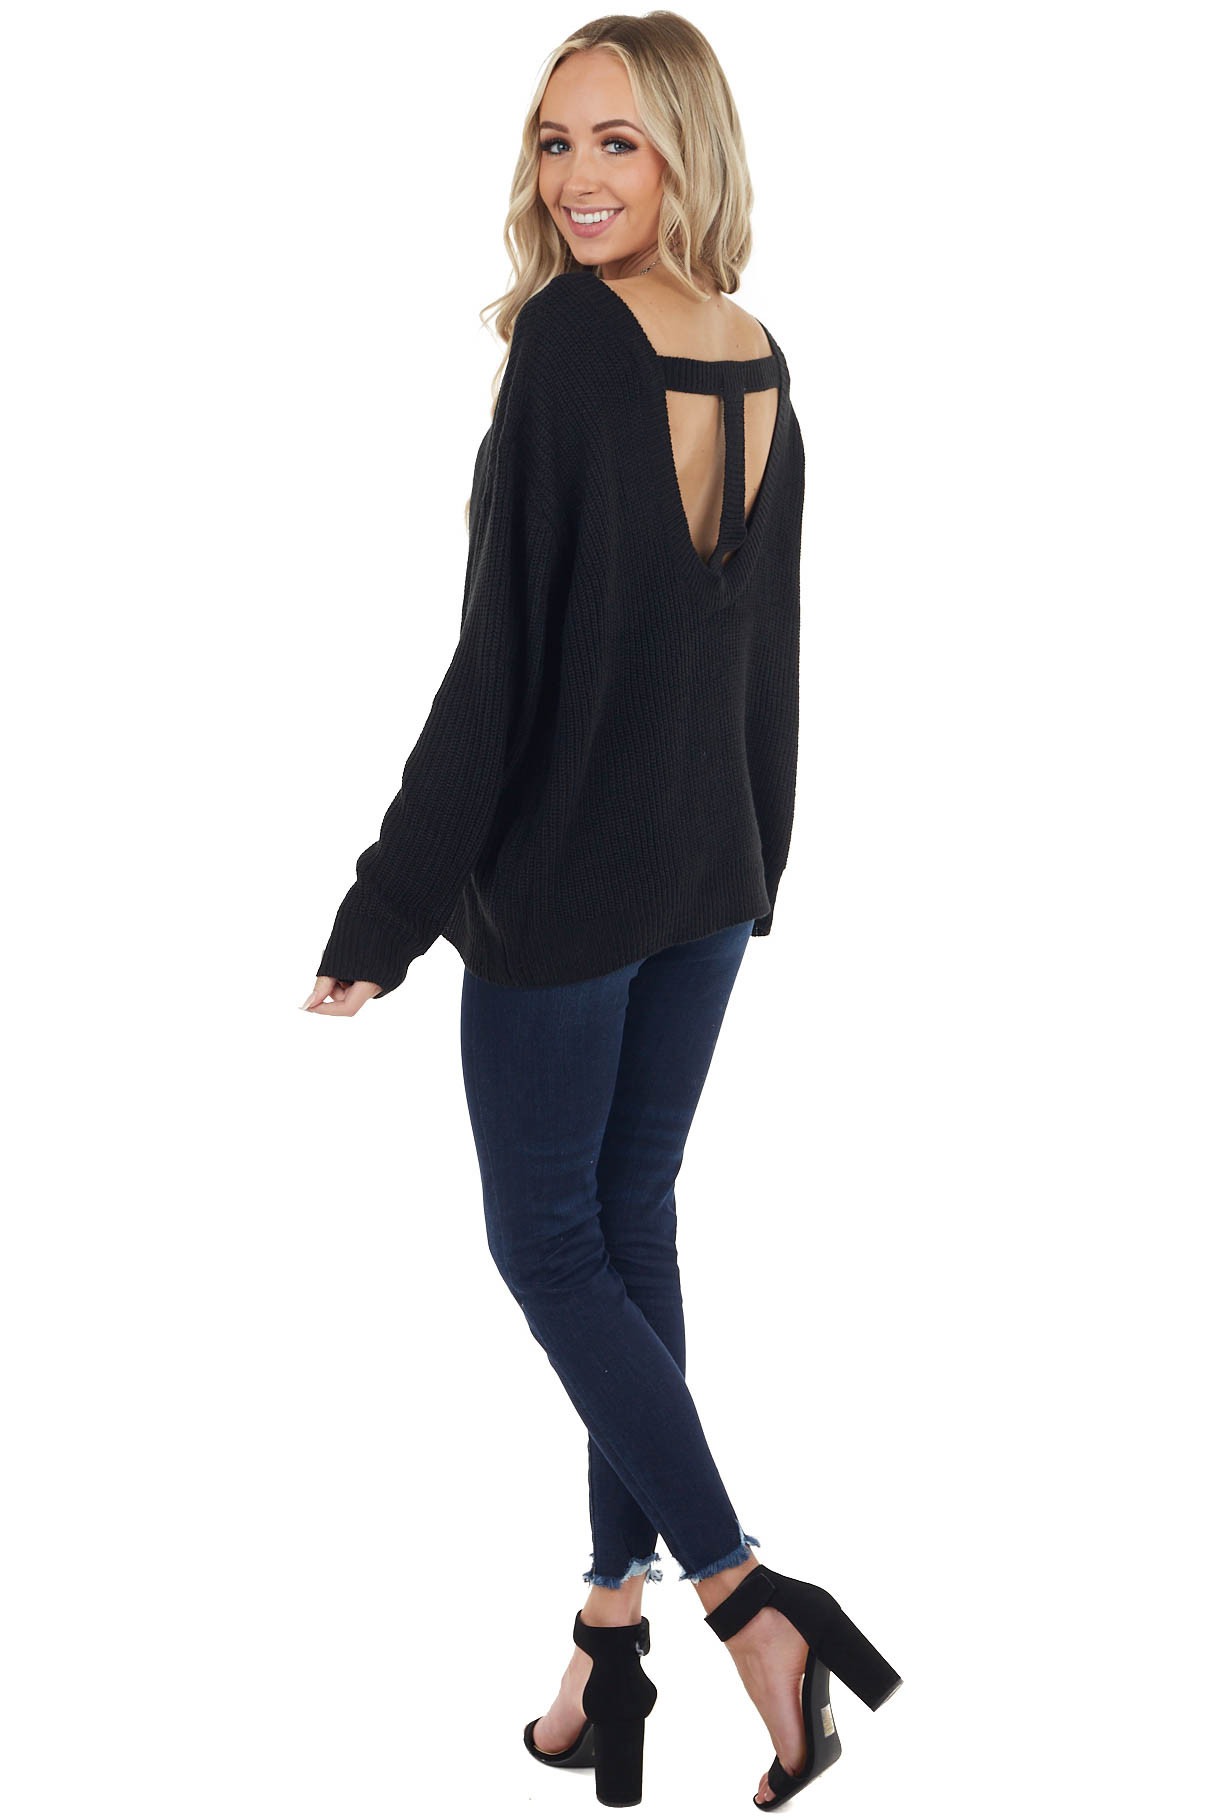 Black Boat Neckline Knit Sweater with Back Cutout Detail